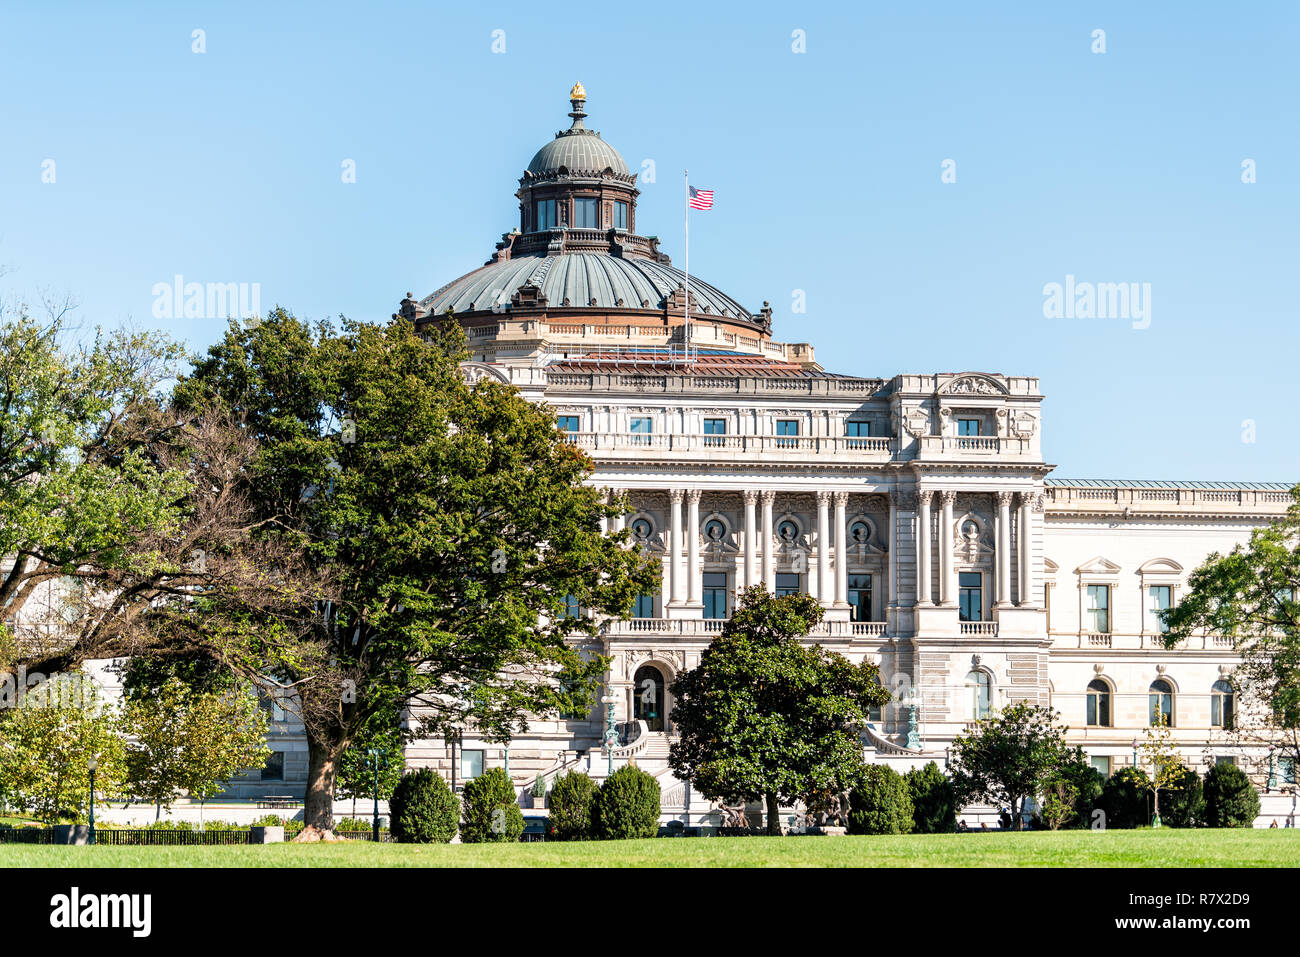 US National Library of Congress dome exterior with American flag waving in Washington DC, USA on Capital capitol hill, columns, facade landscape build Stock Photo